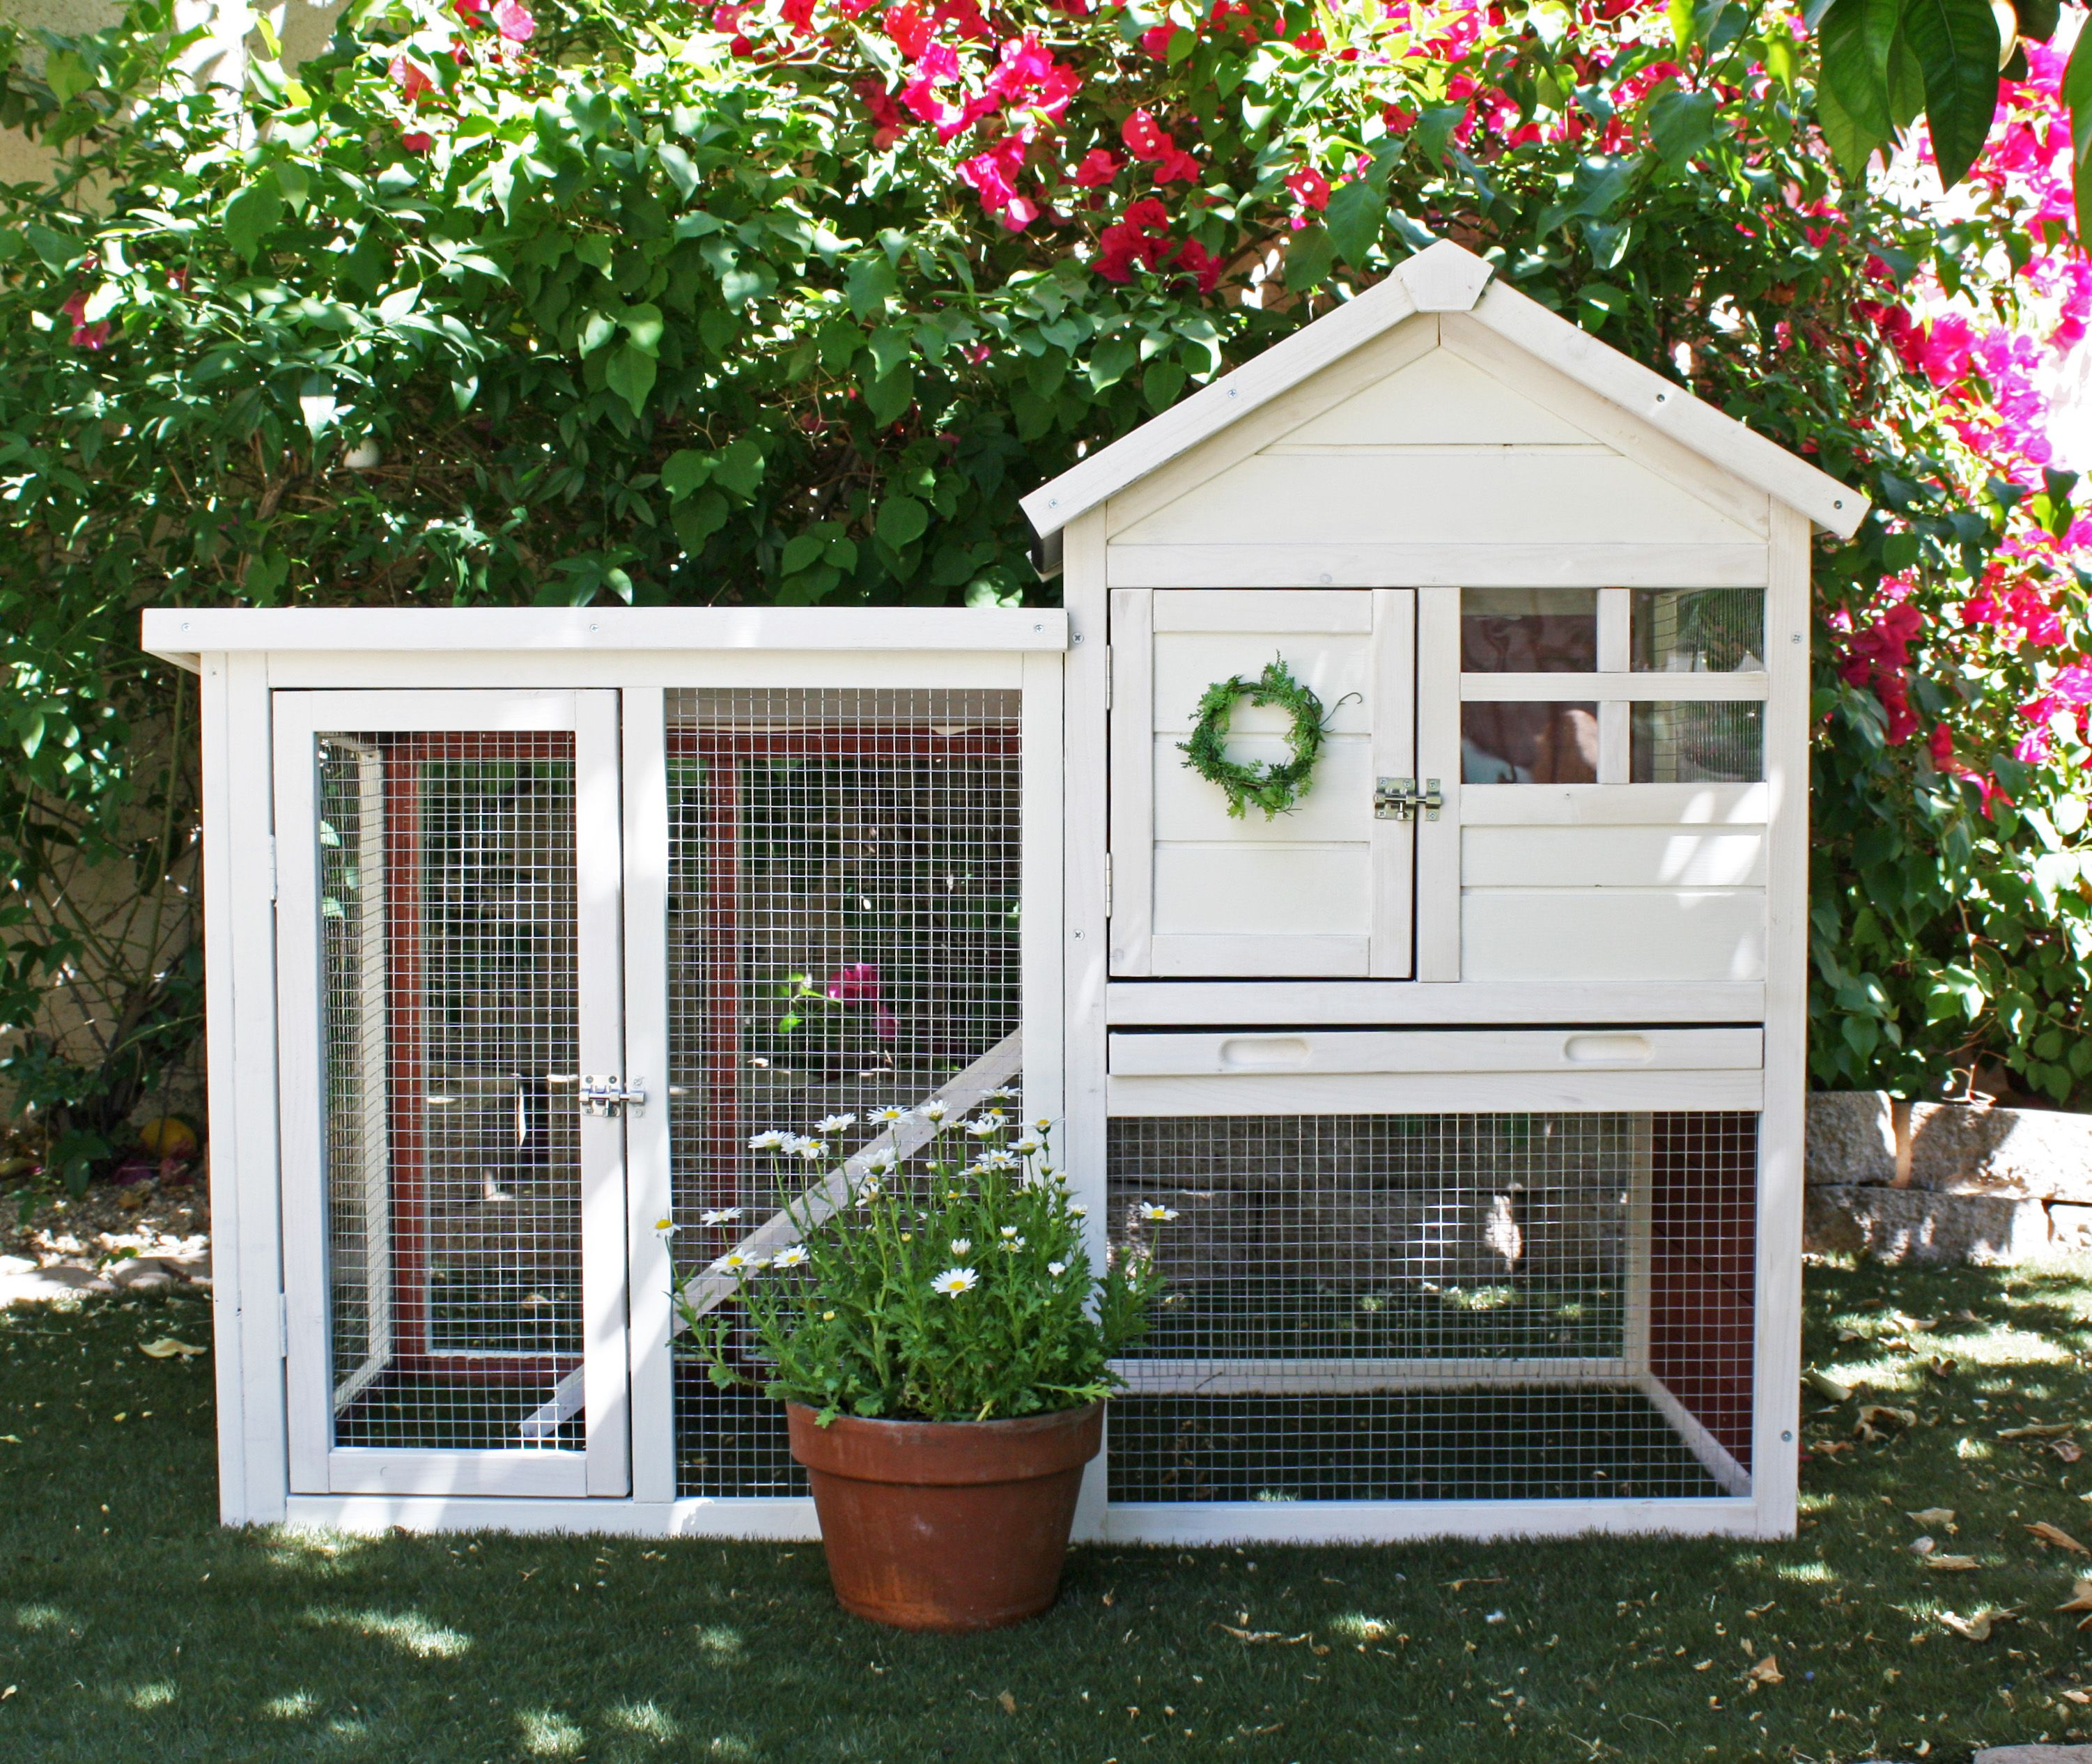 wayfair reviews rabbit hector wood murphy tucker the picket ca pdp white solid pet fence hutch